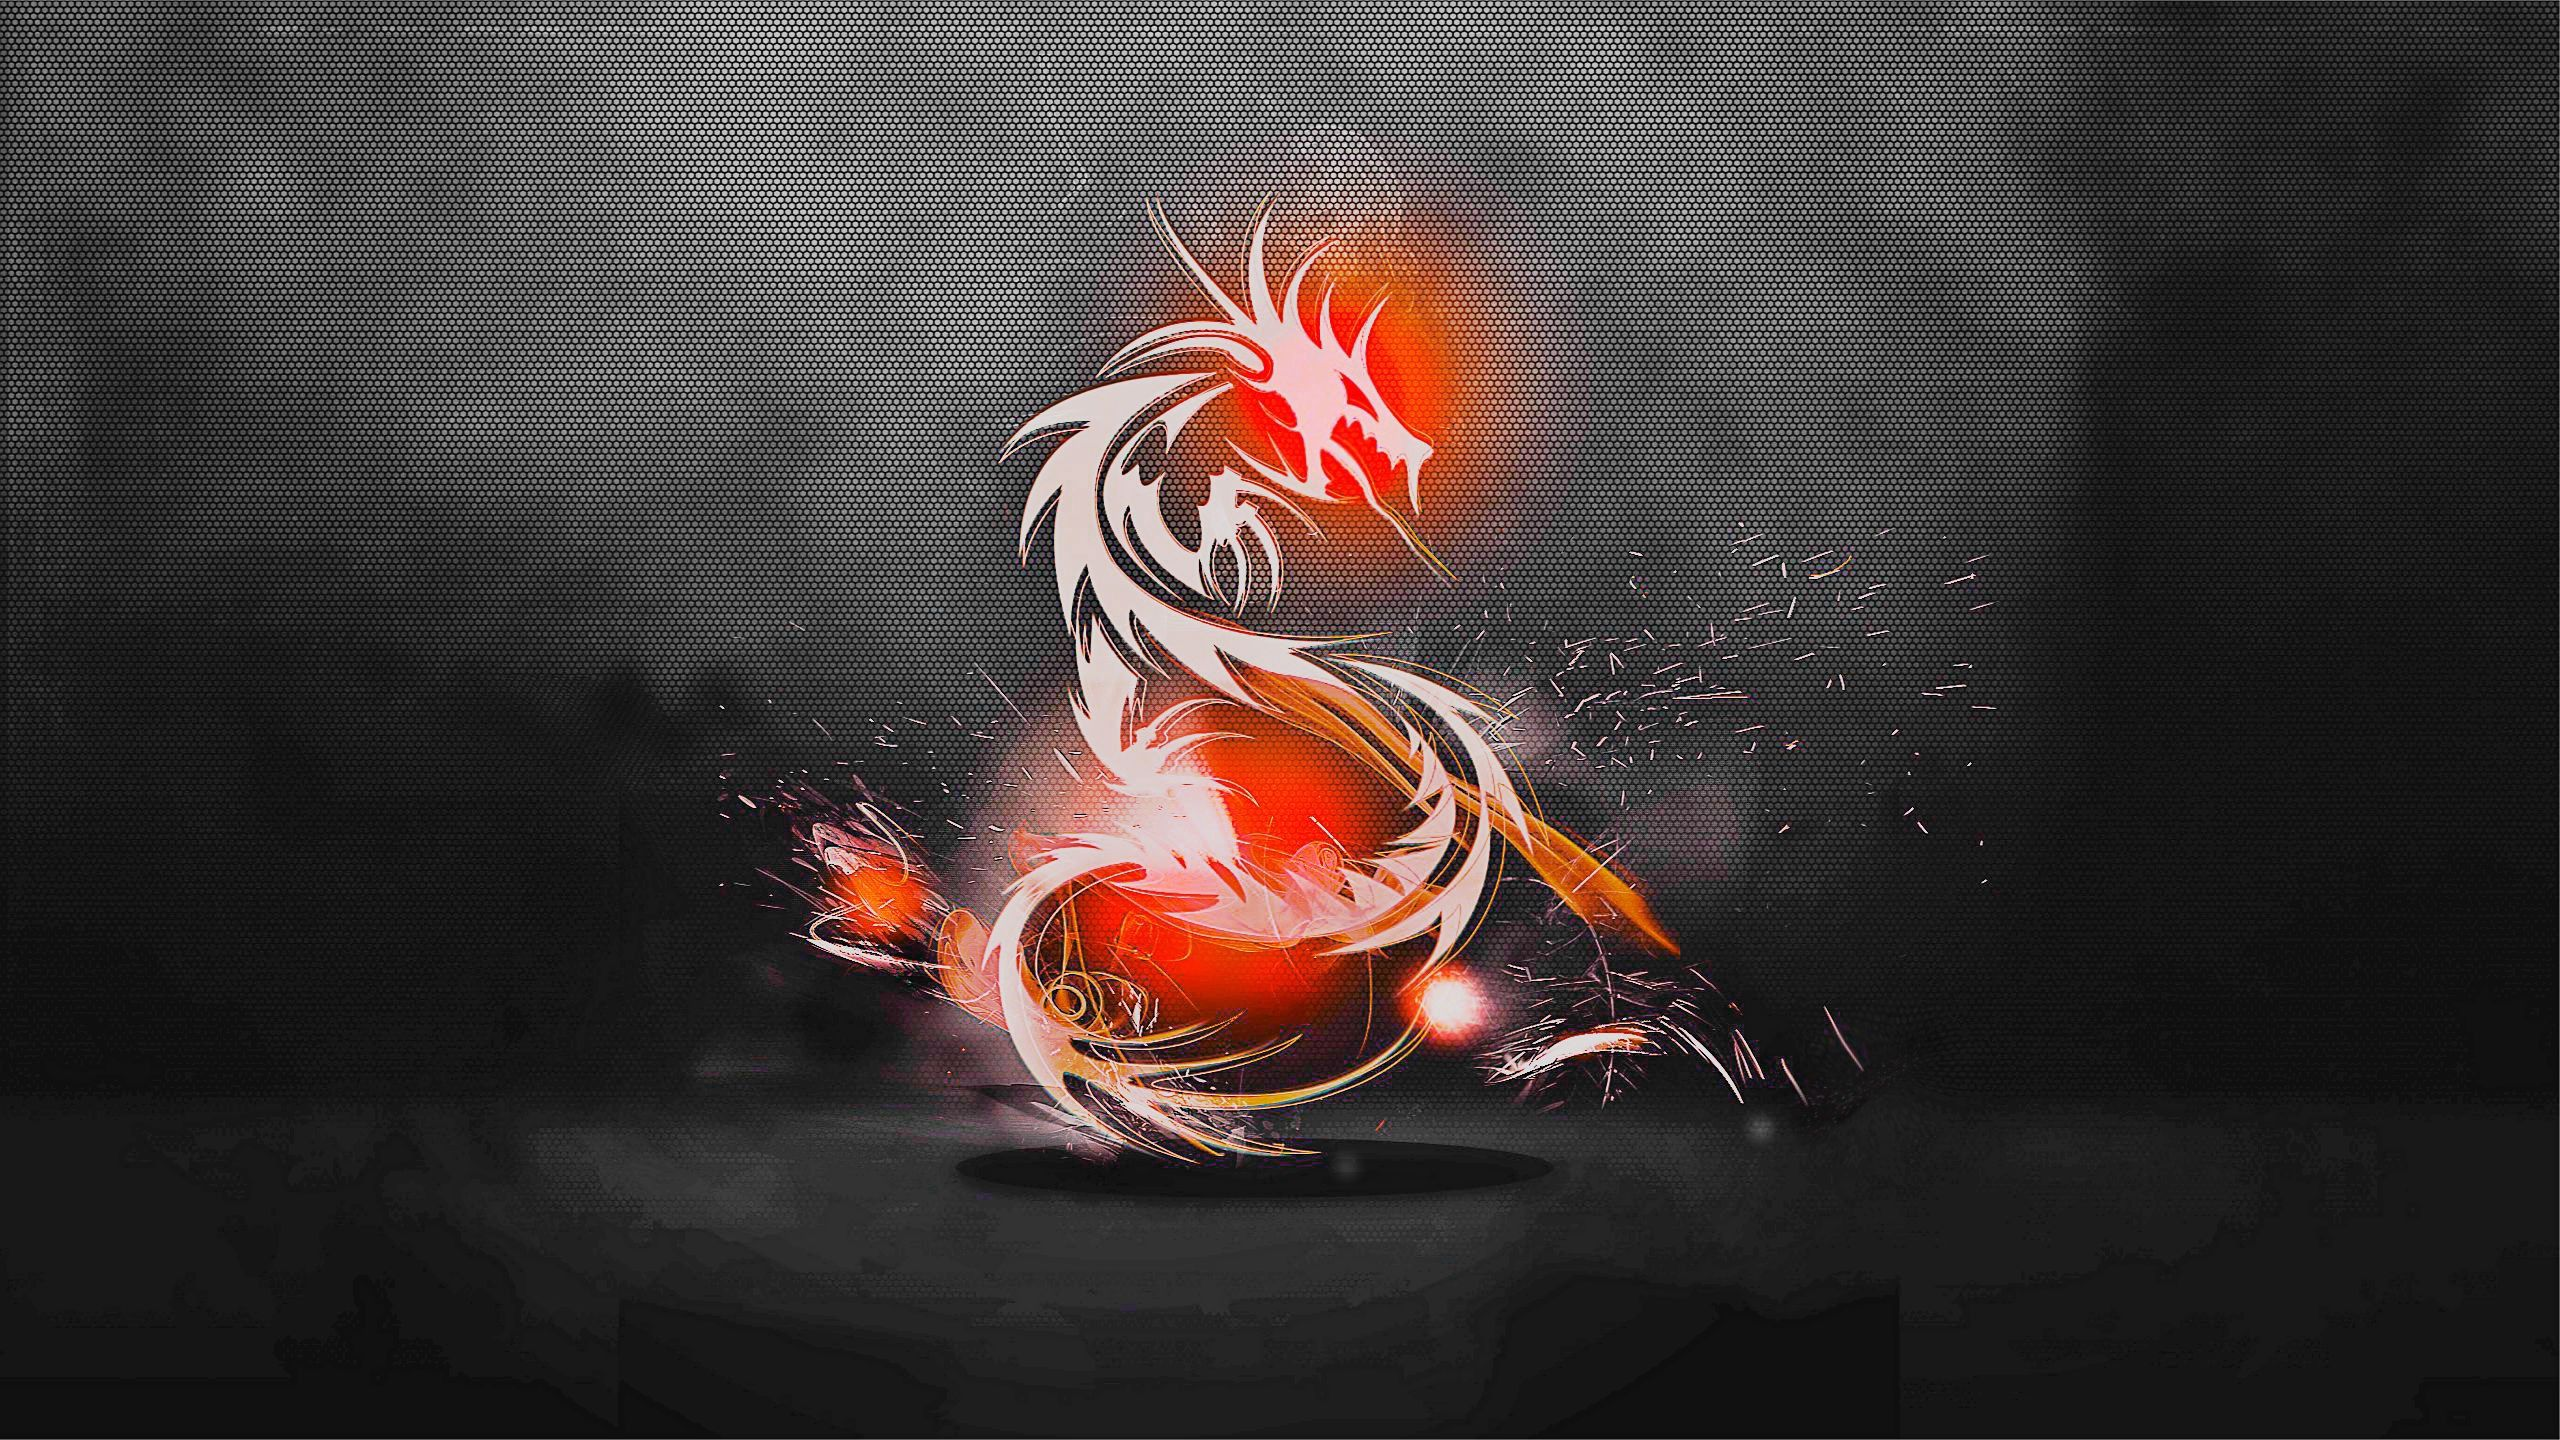 149069 download wallpaper Abstract, Dragon, Background, Fire, Shadow screensavers and pictures for free